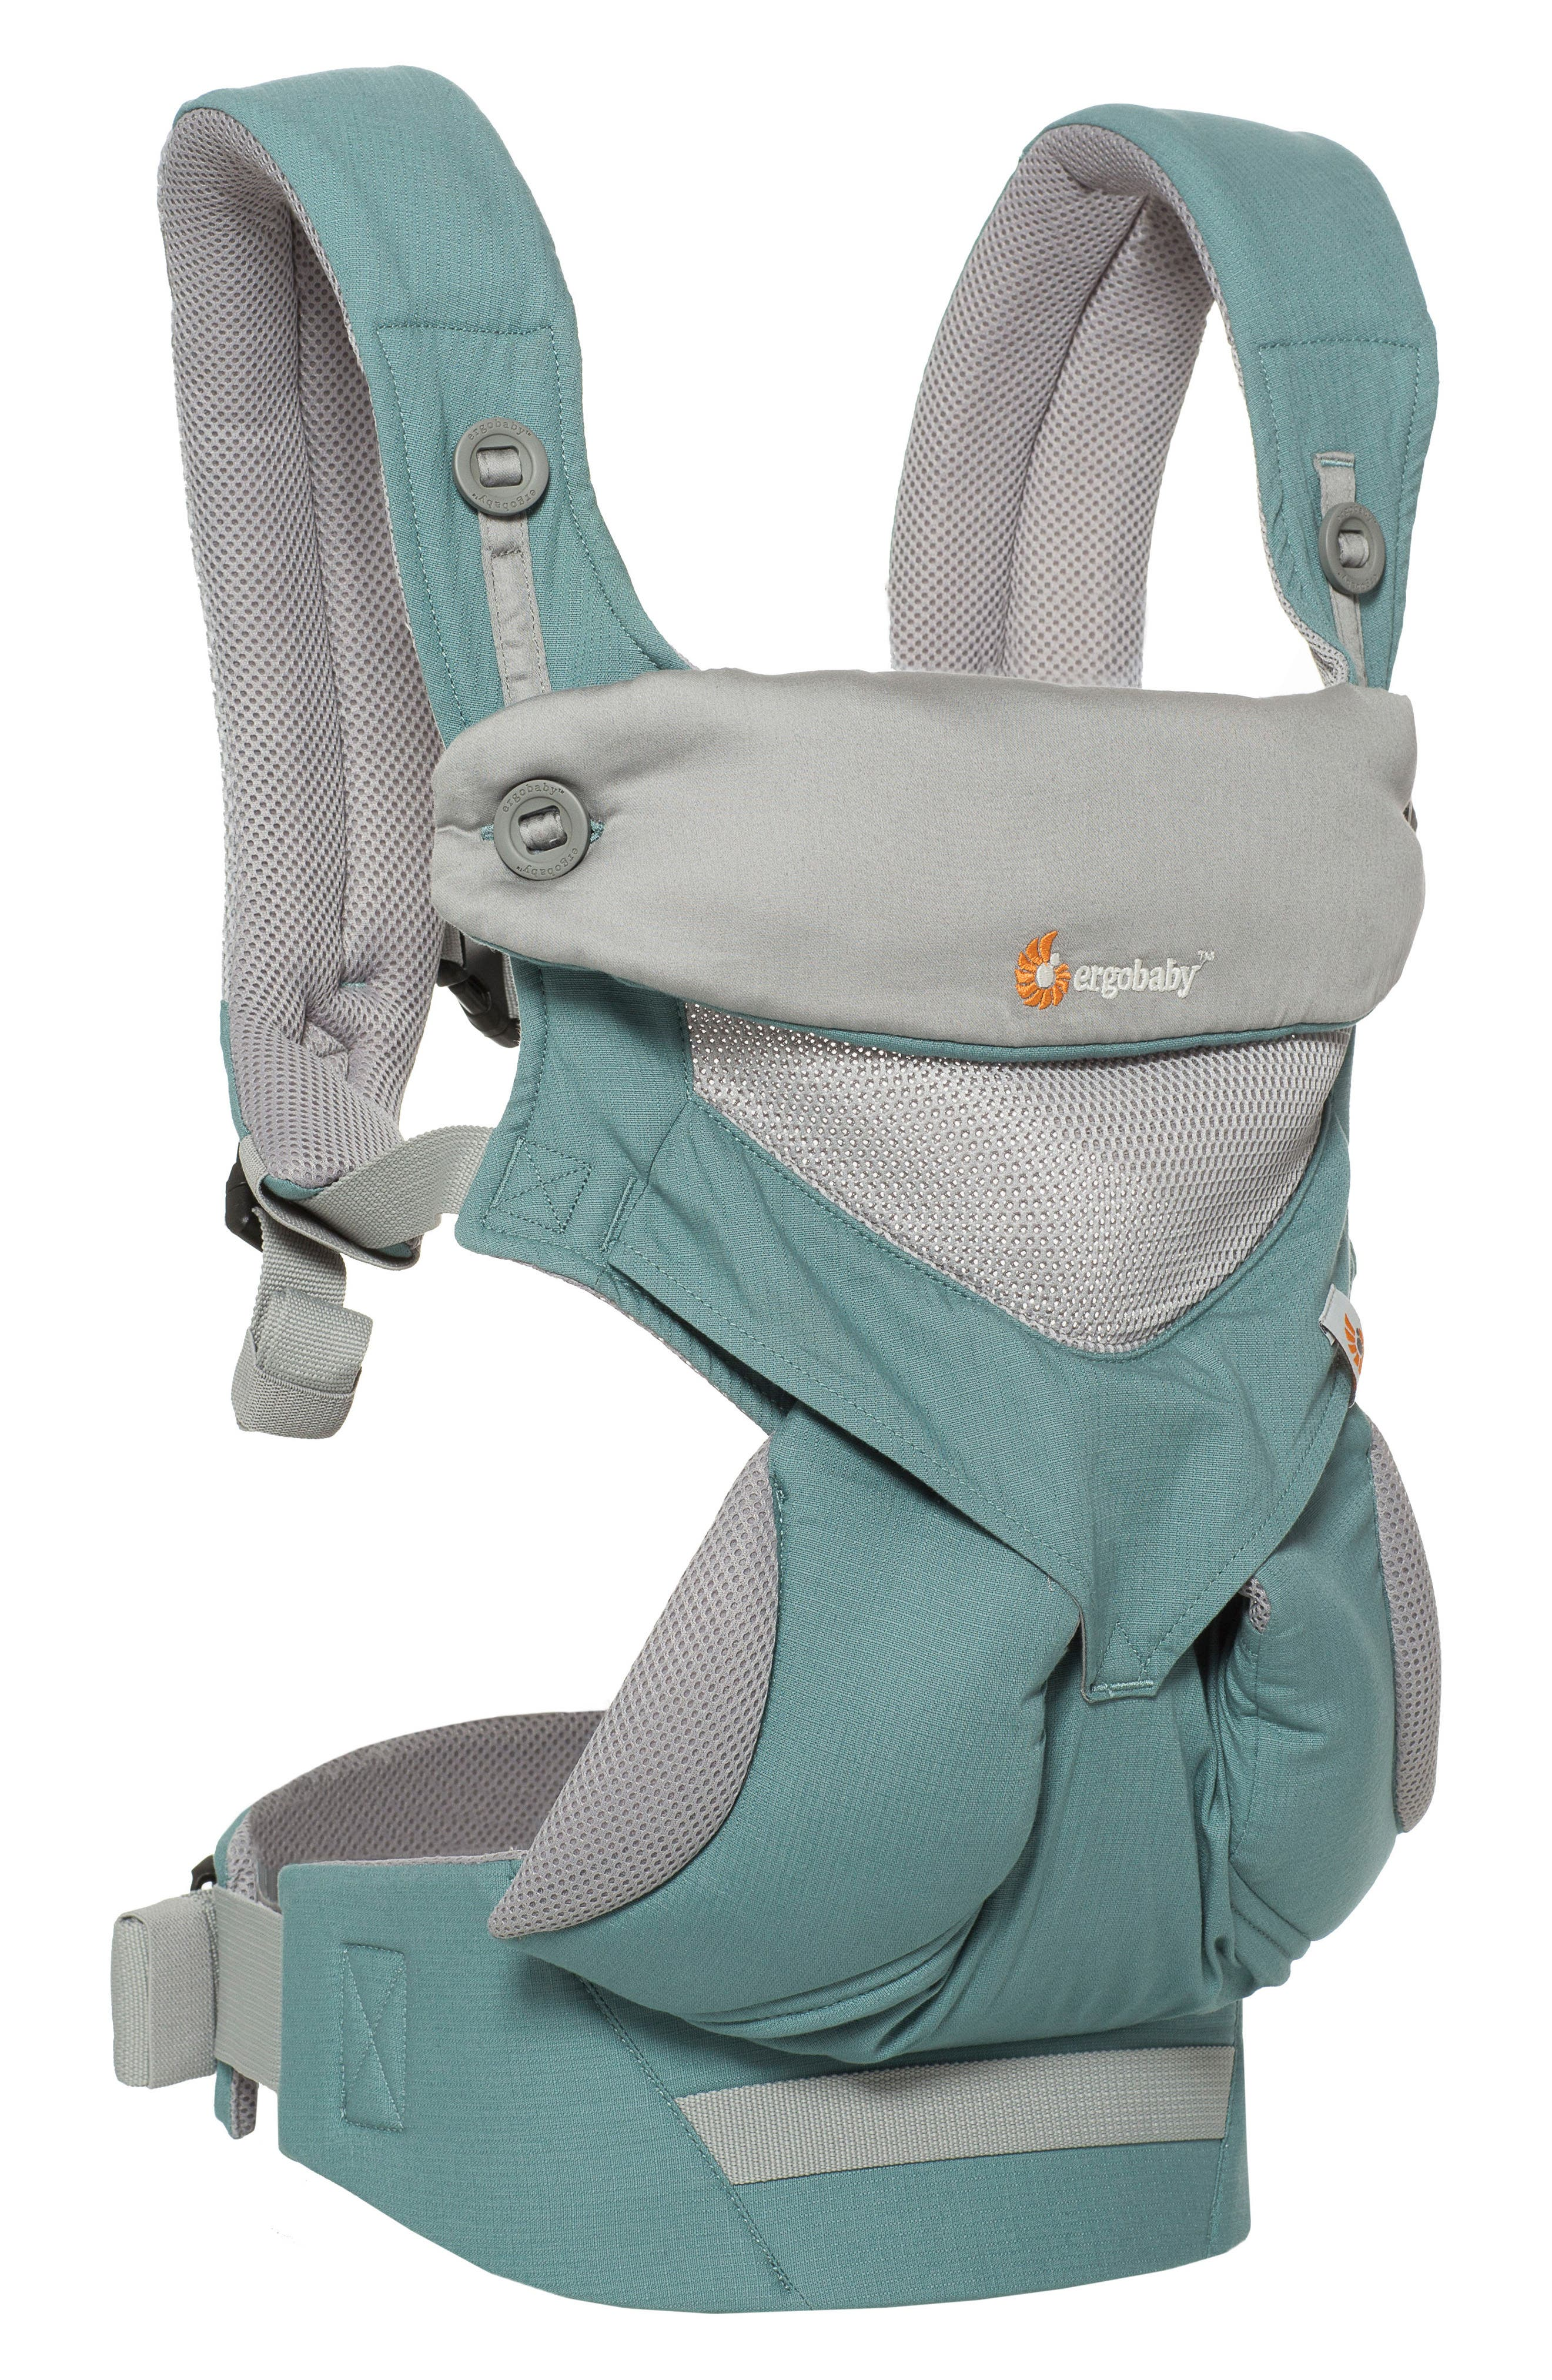 Four Position 360 - Cool Air Baby Carrier,                             Alternate thumbnail 3, color,                             Green/ Light Grey